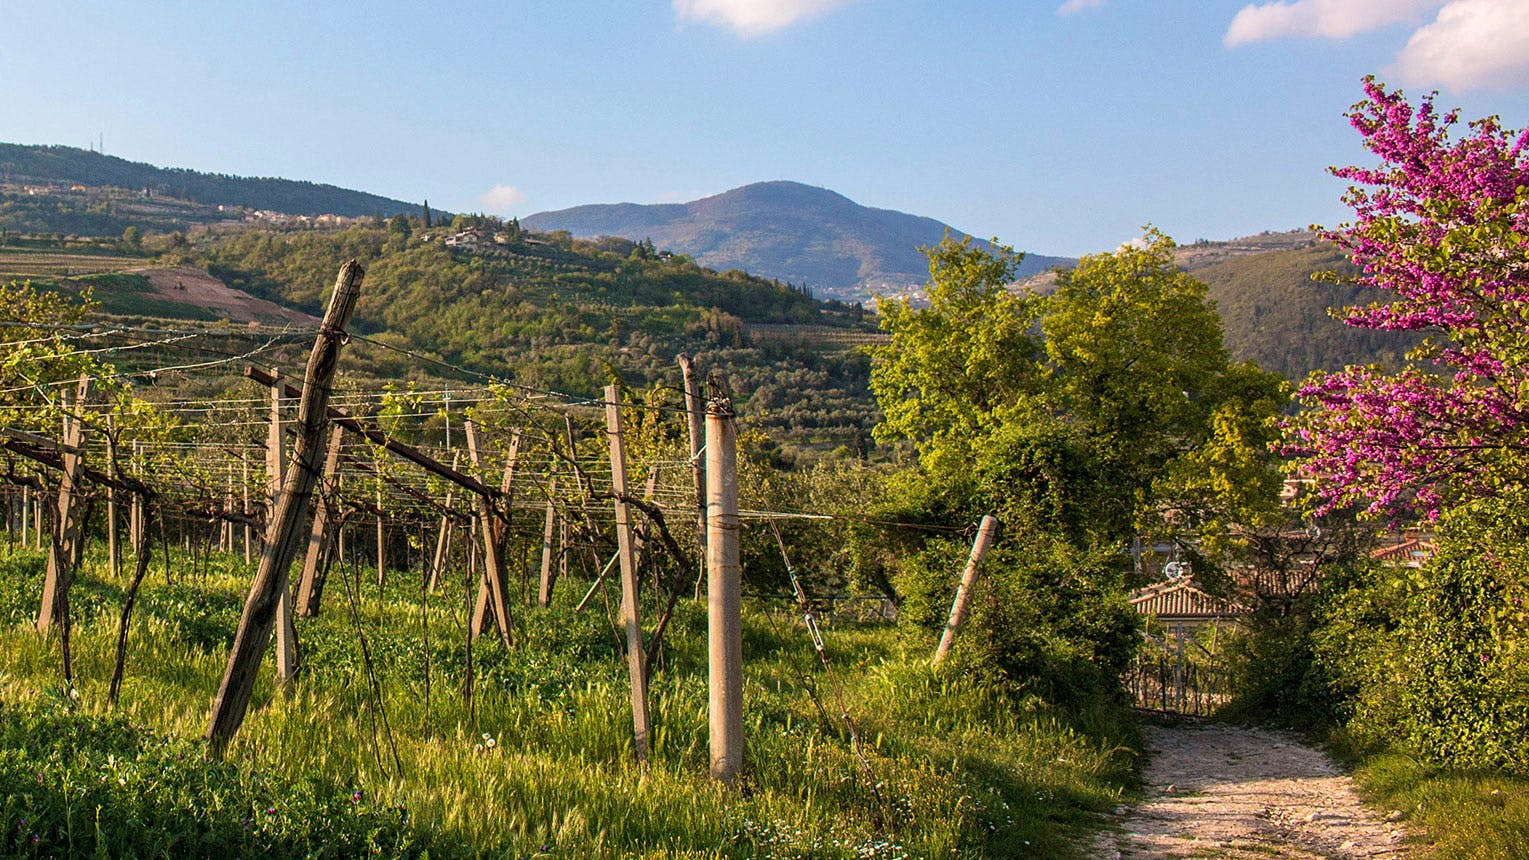 The Poet of Valpolicella